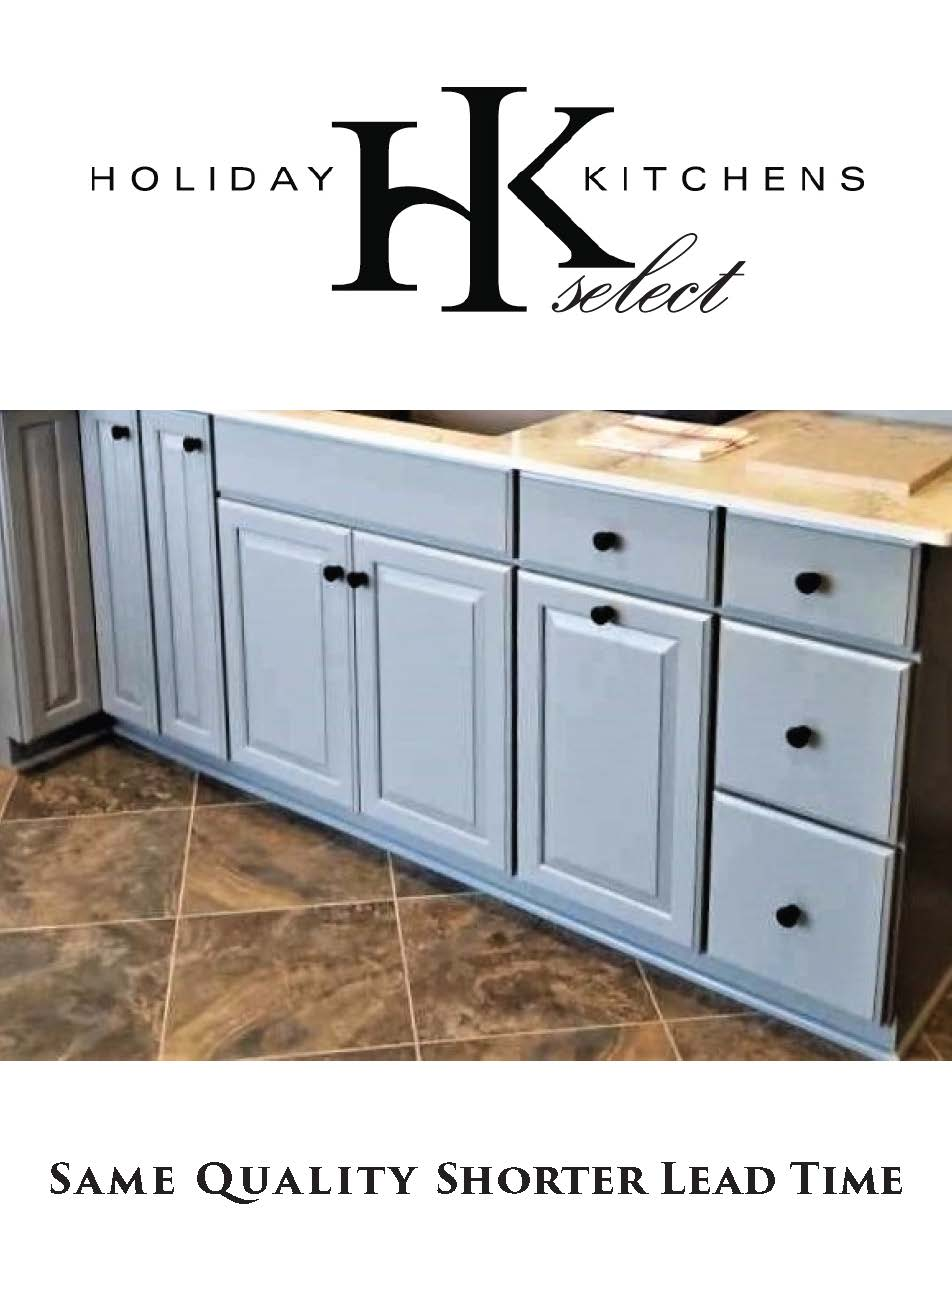 Pages from HolidayKitchensSelectBrochure frontpage.jpg